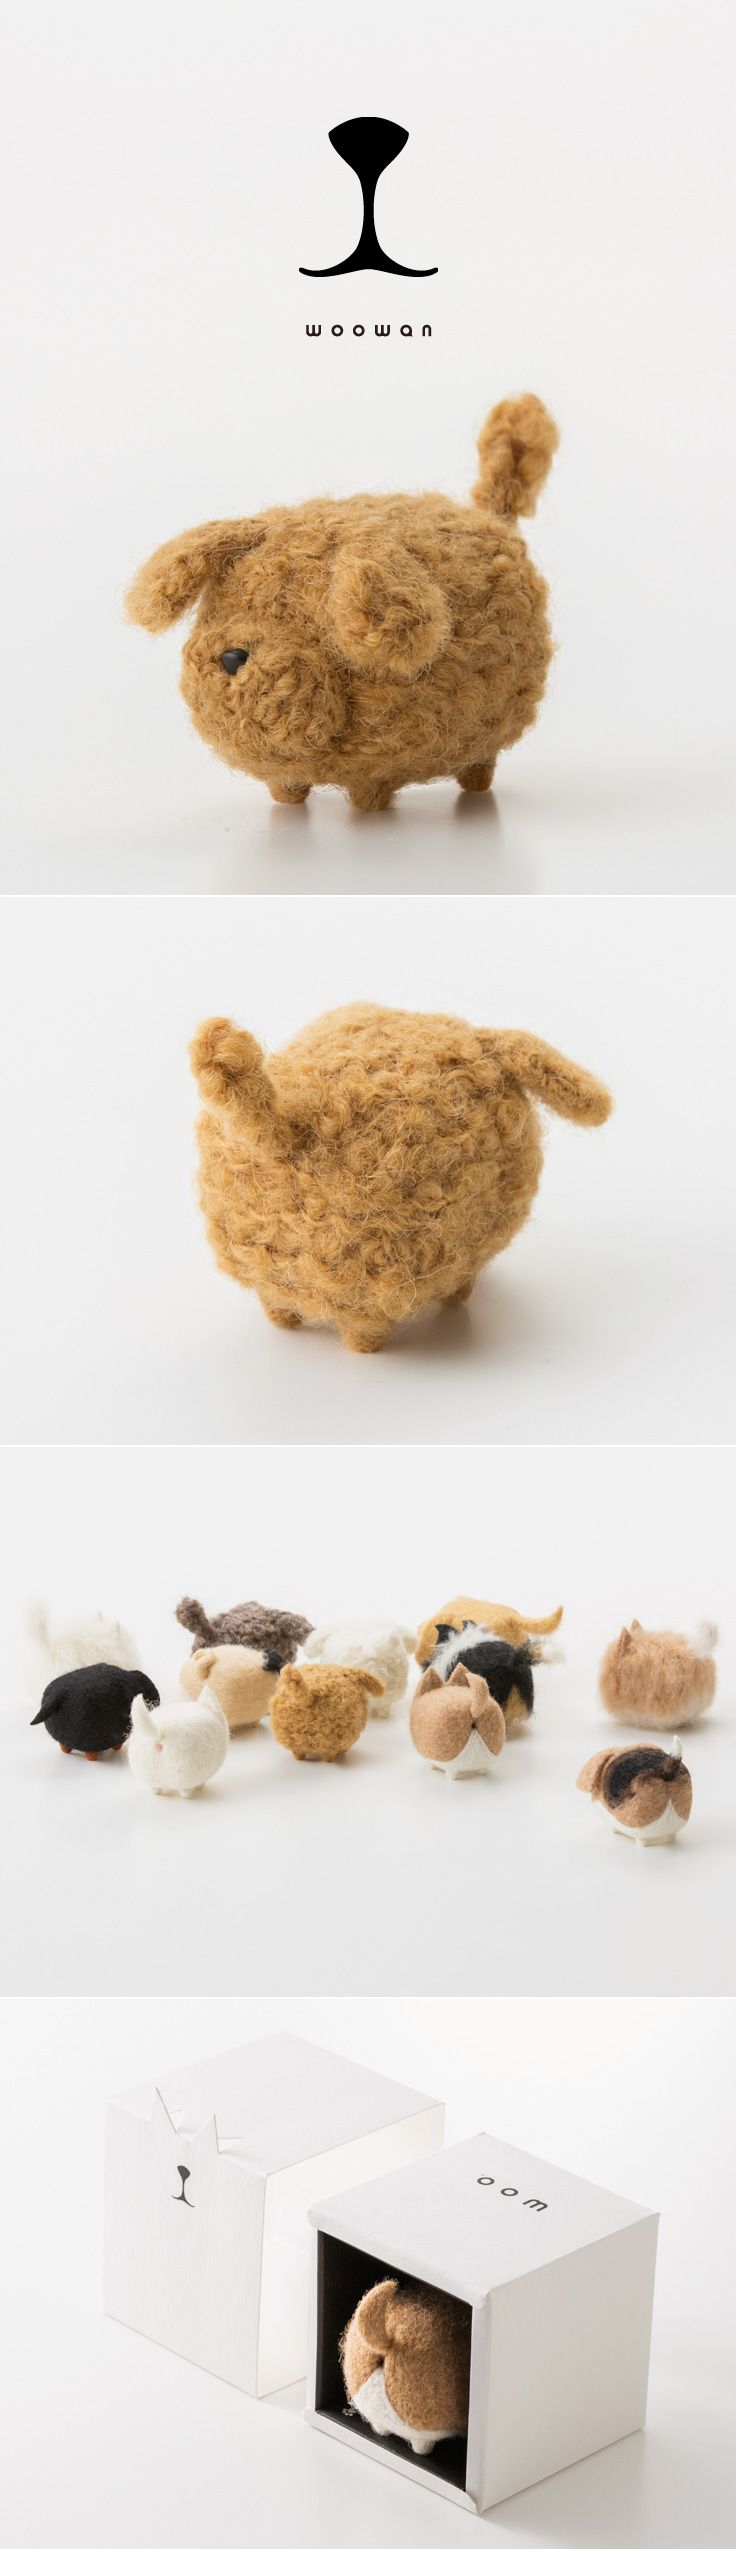 woowan/犬/dog/羊毛フェルト/Needle/Felting/mascot/doll/home/style/products/art/design